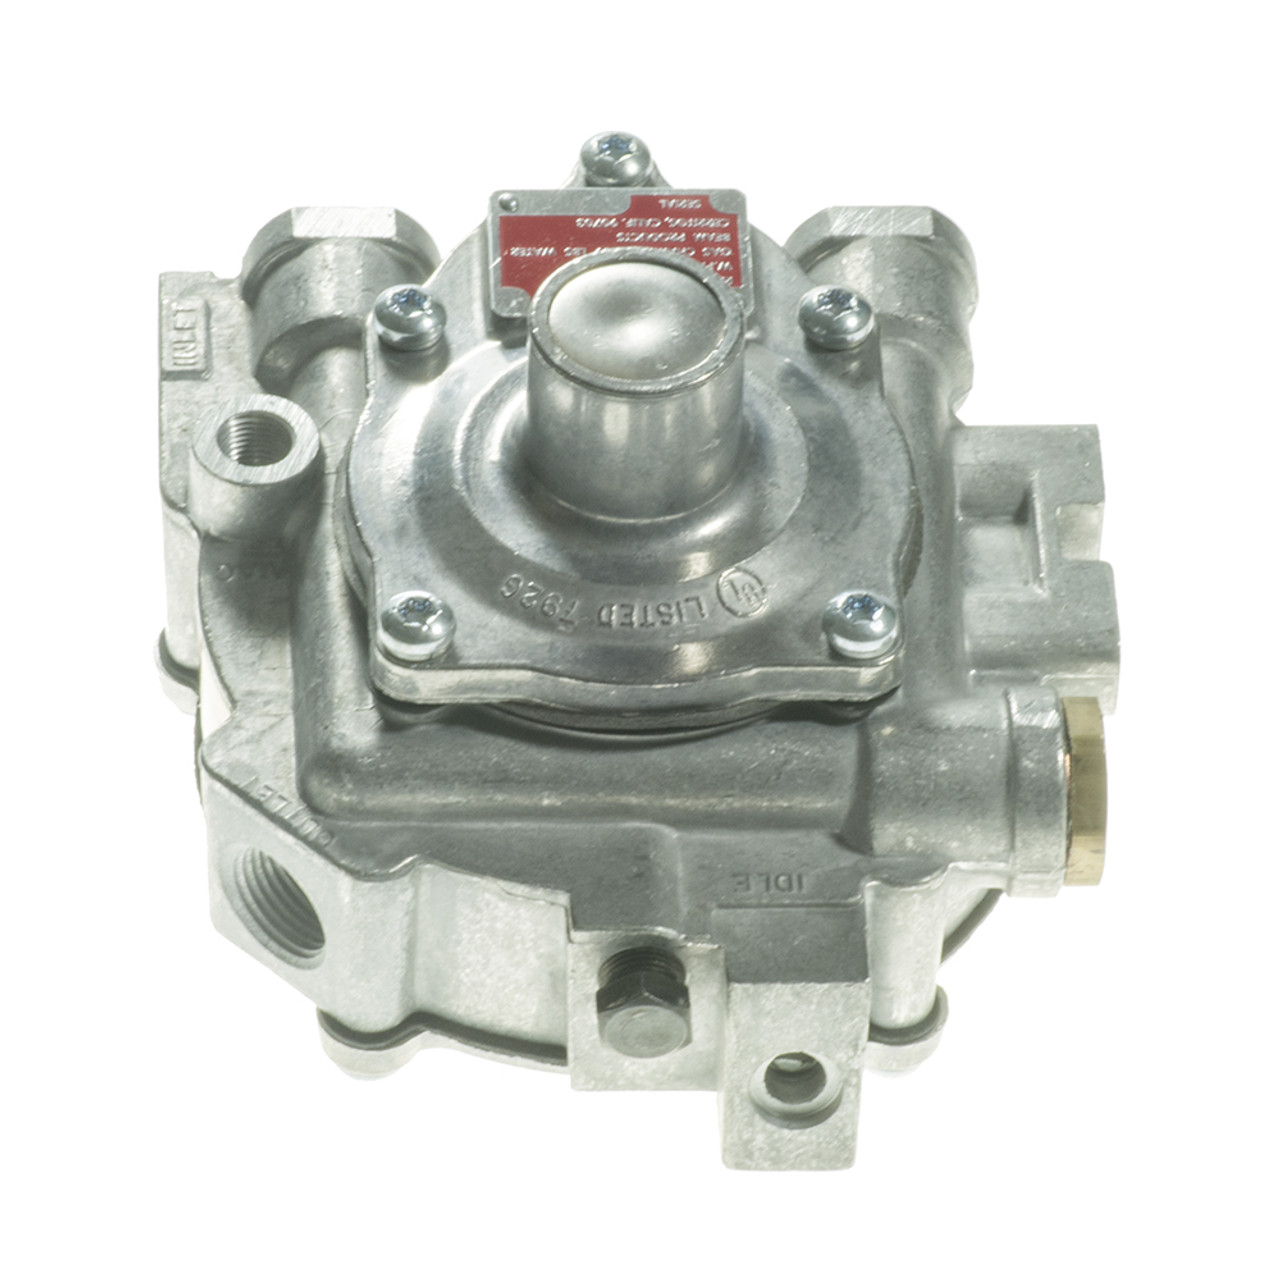 impco beam t60a propane forklift gas reducer  [ 1000 x 1000 Pixel ]